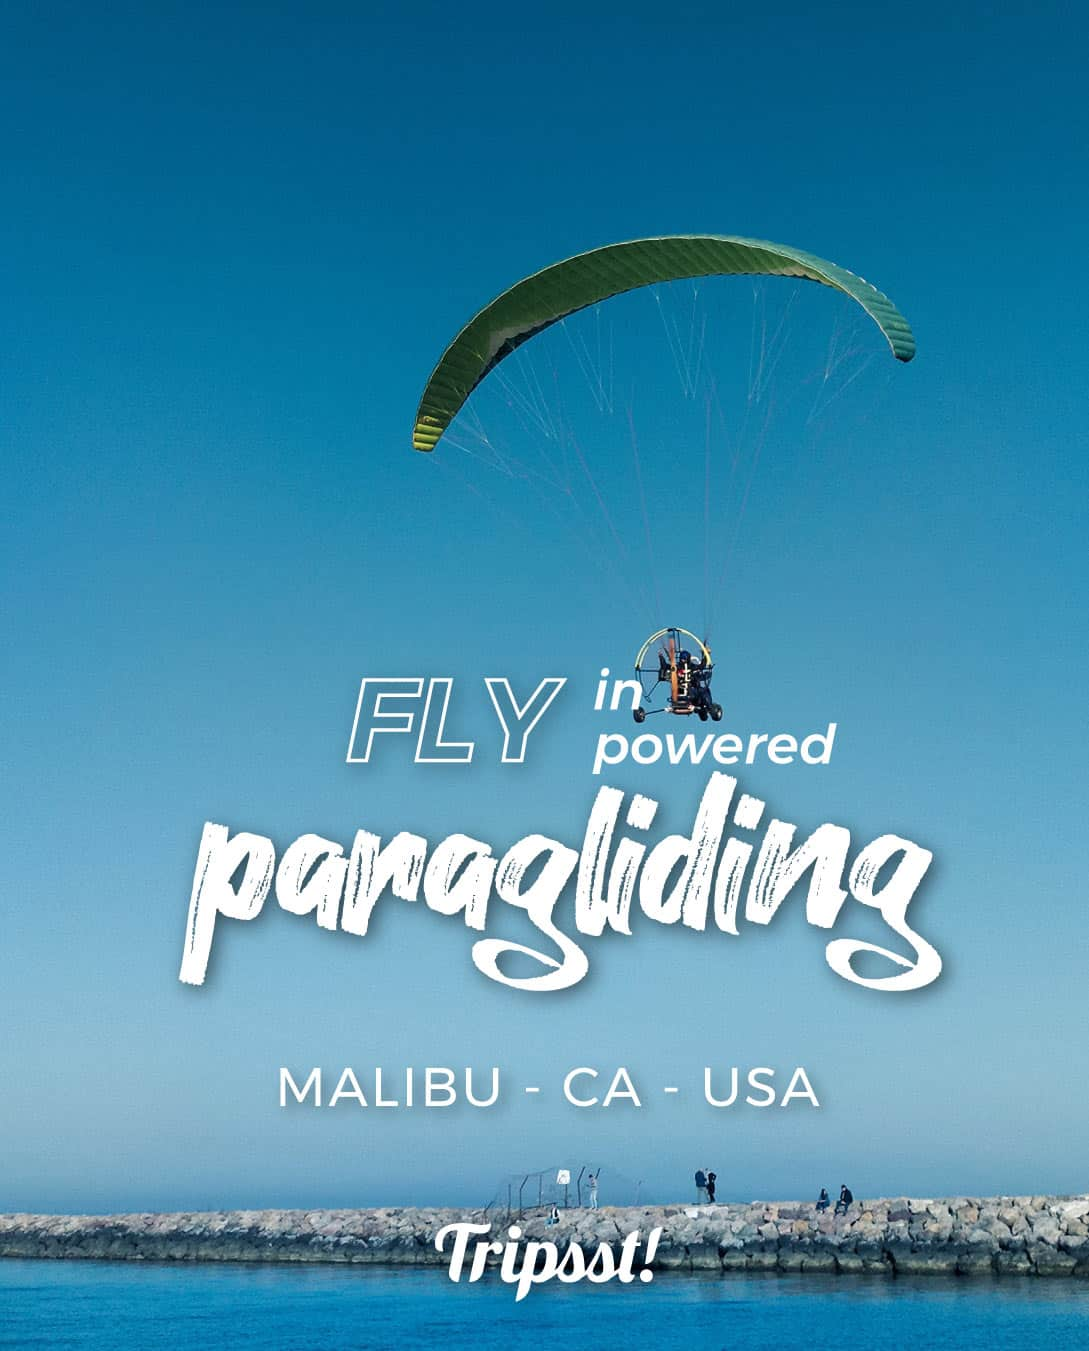 A couple in a motorized paragliding descending